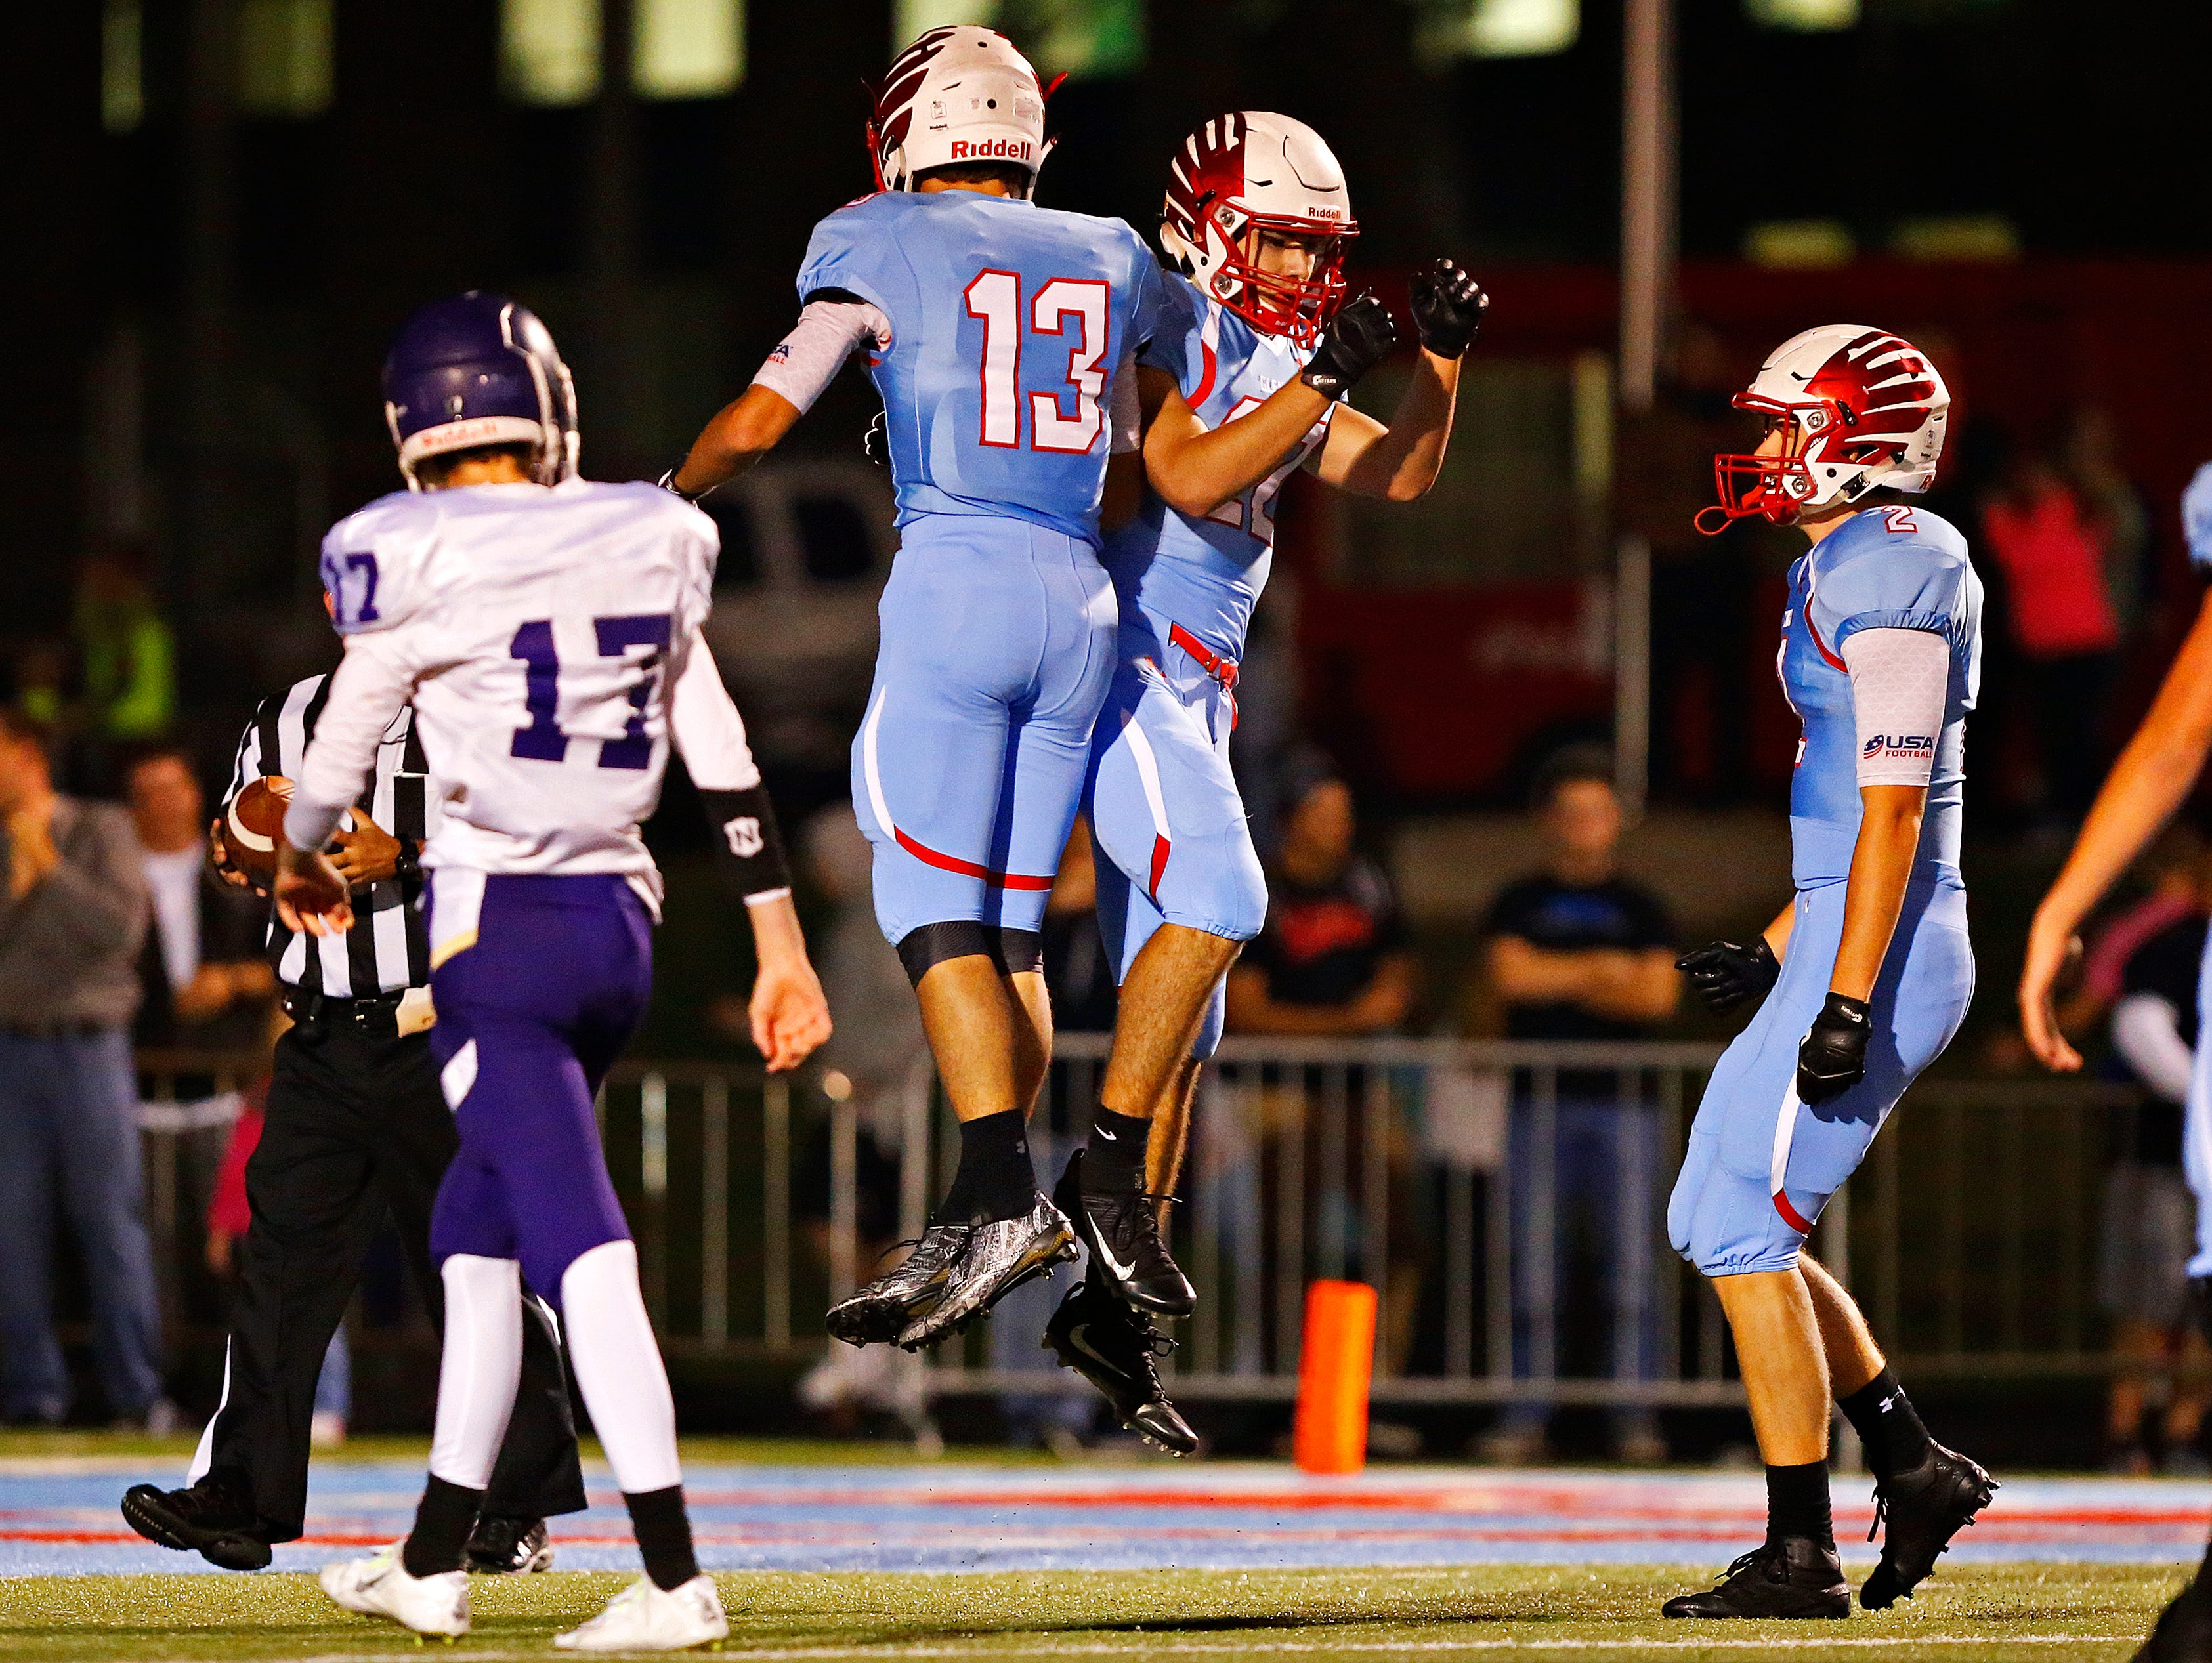 Glendale High School wide receivers Max Nichols (13) and Luke Montgomery (22) celebrate after Montgomery caught a long touchdown pass by quarterback Alex Houston (not pictured) during first quarter action of the game between Glendale High School and Camdenton High School at Lowe Stadium in Springfield, Mo. on Oct. 14, 2016.